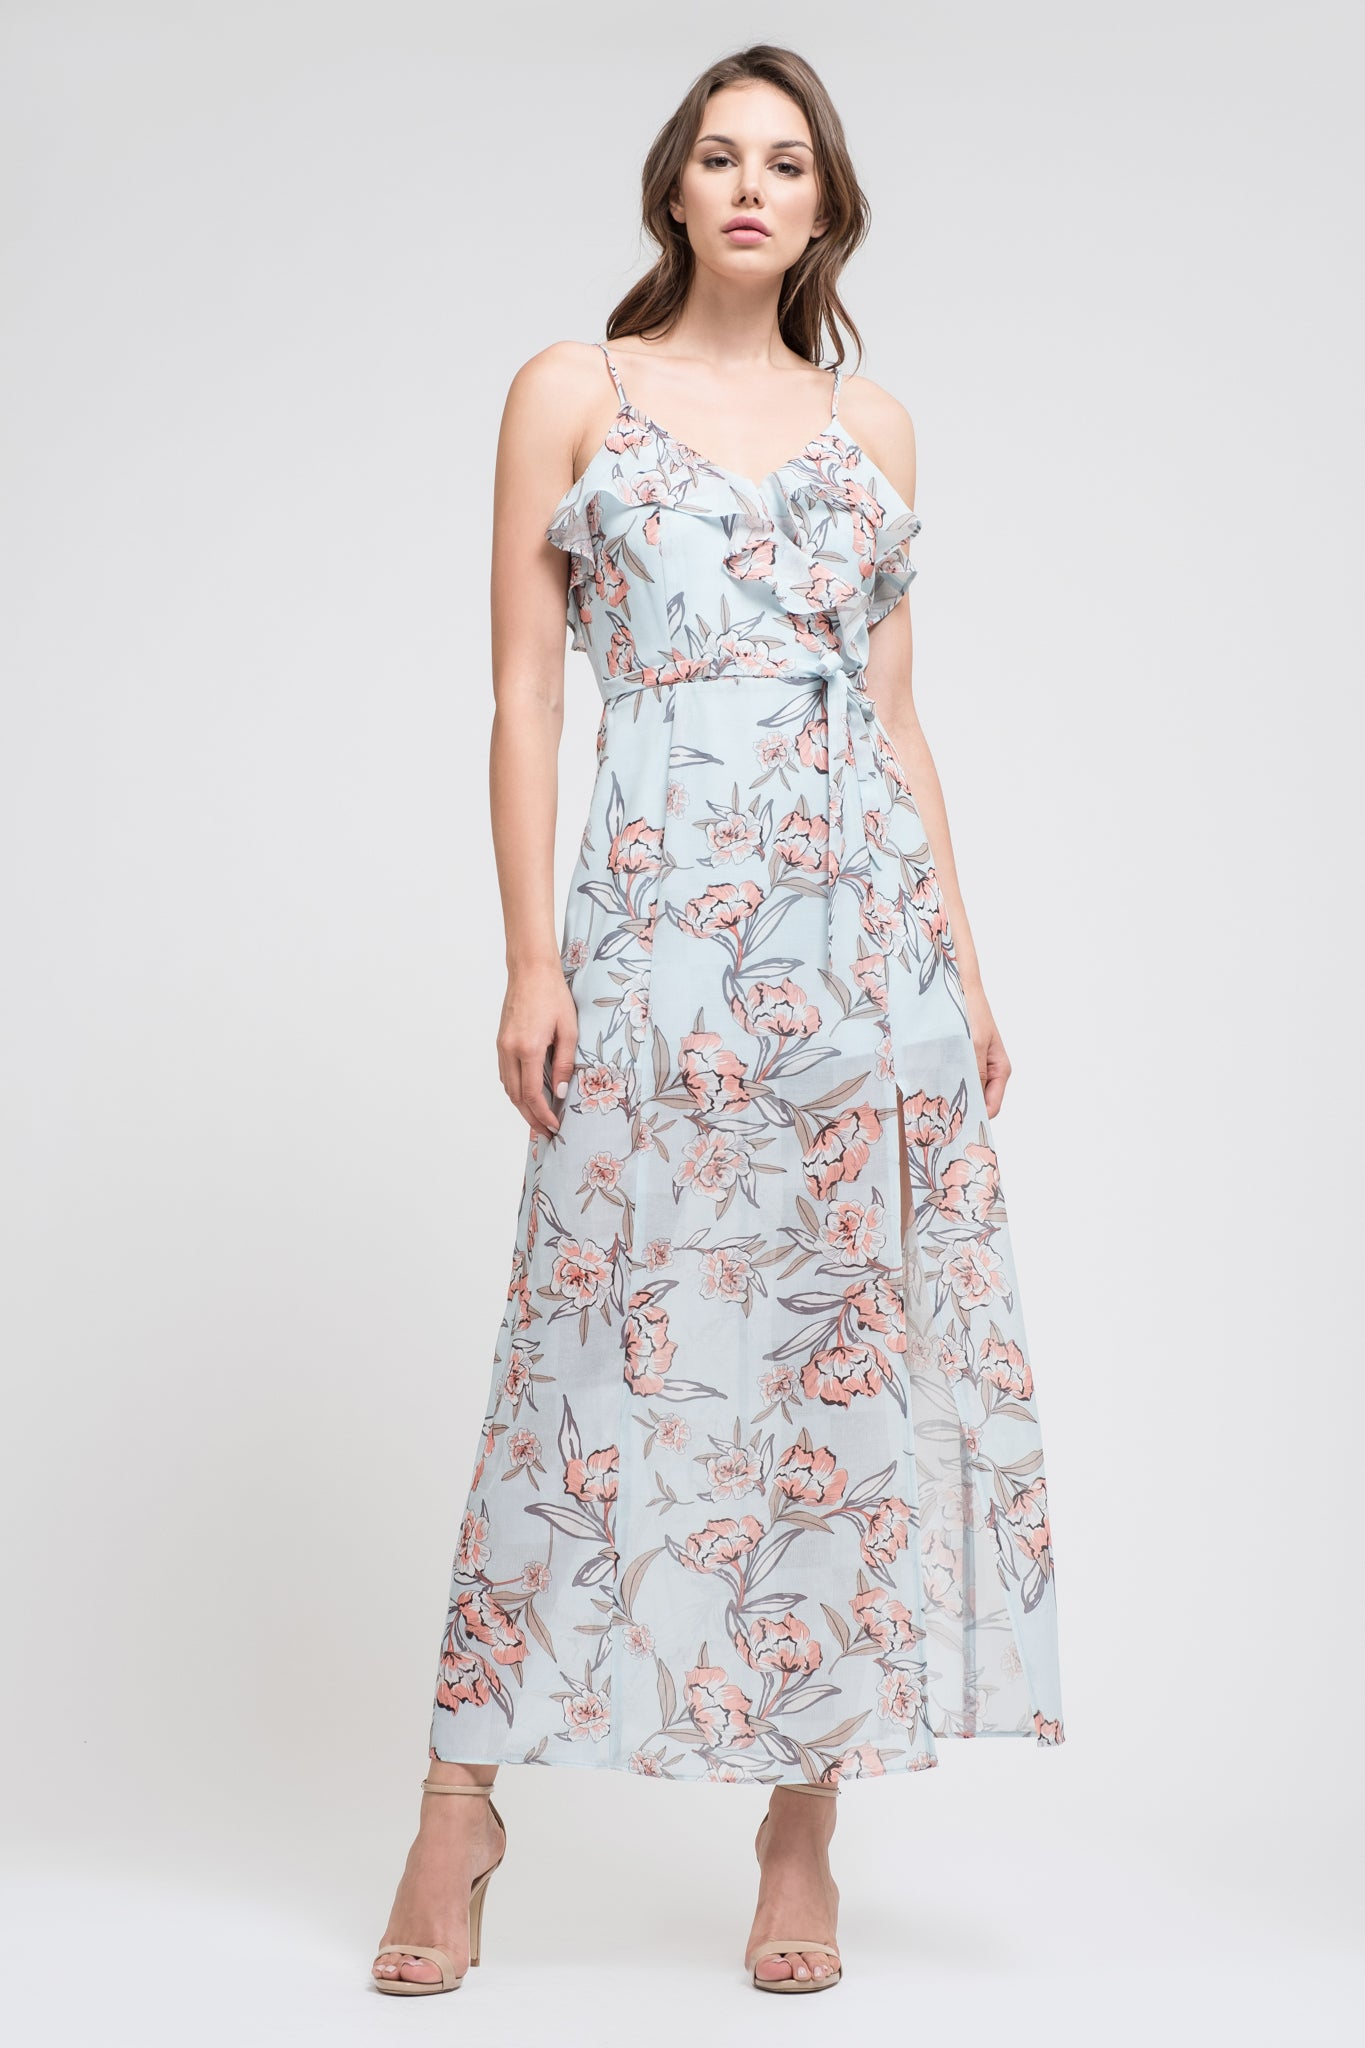 FLORAL PRINTED MAXI DRESS HIGH SLIT - J.O.A.